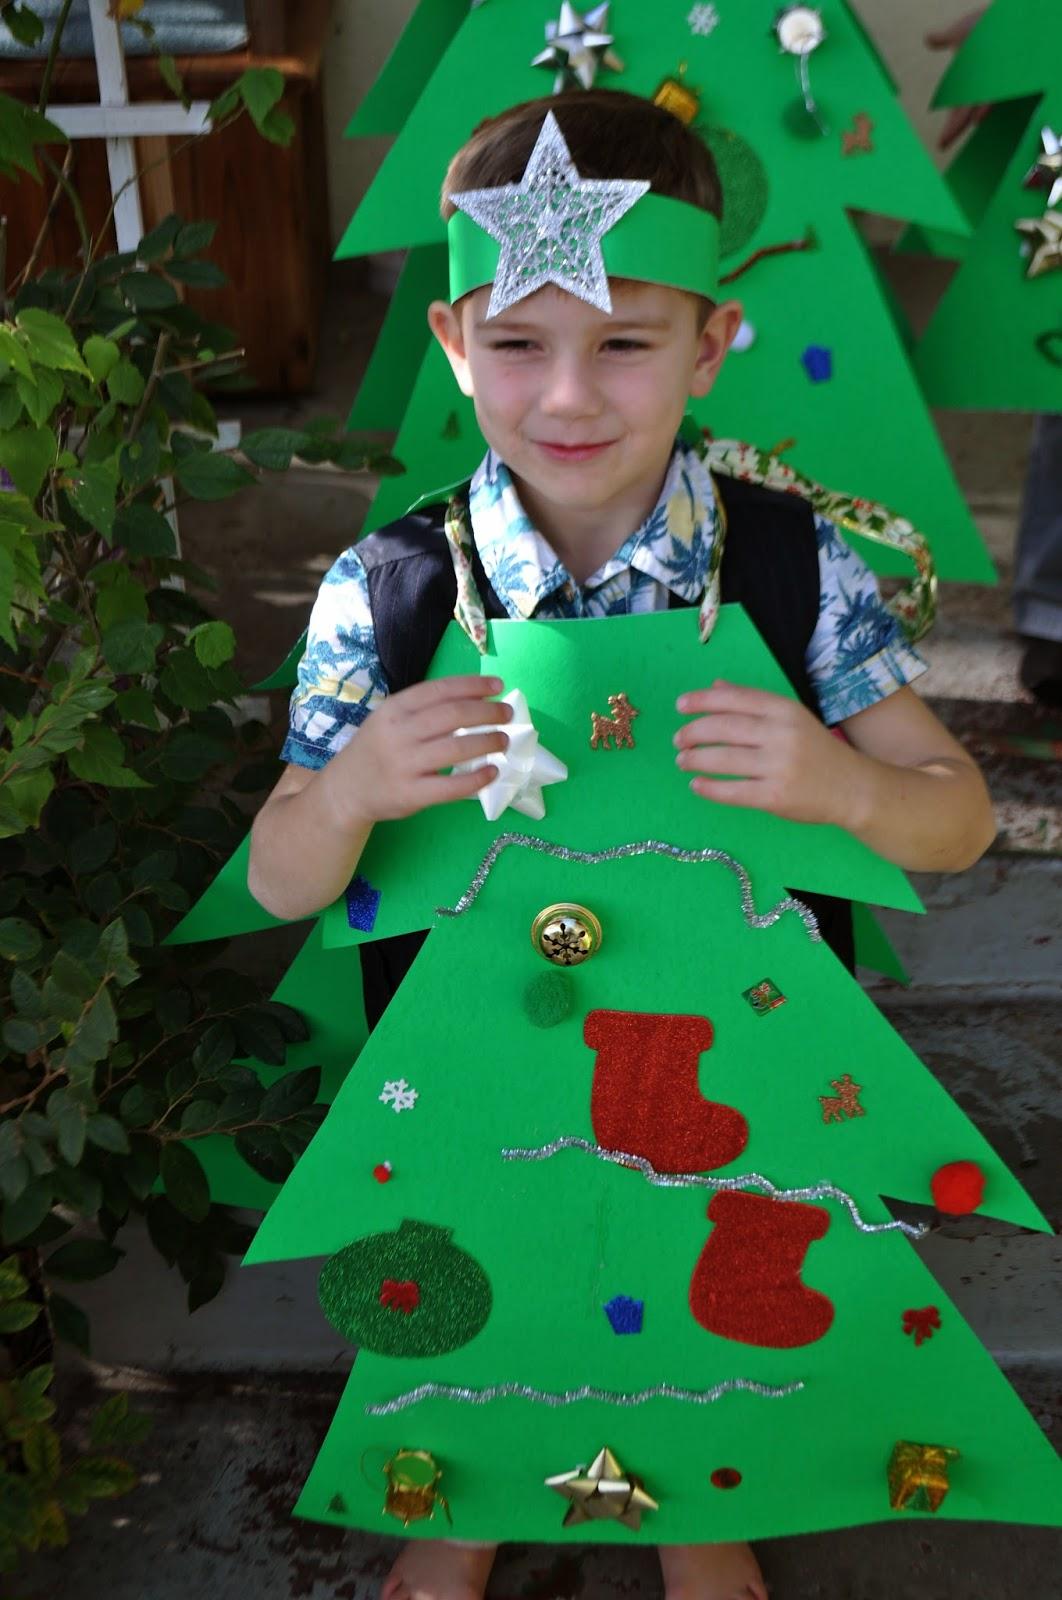 christmas tree costumes that he grabbed the kids after church one sunday and snapped a few shots since the kids decorated their own trees - Christmas Tree Costume